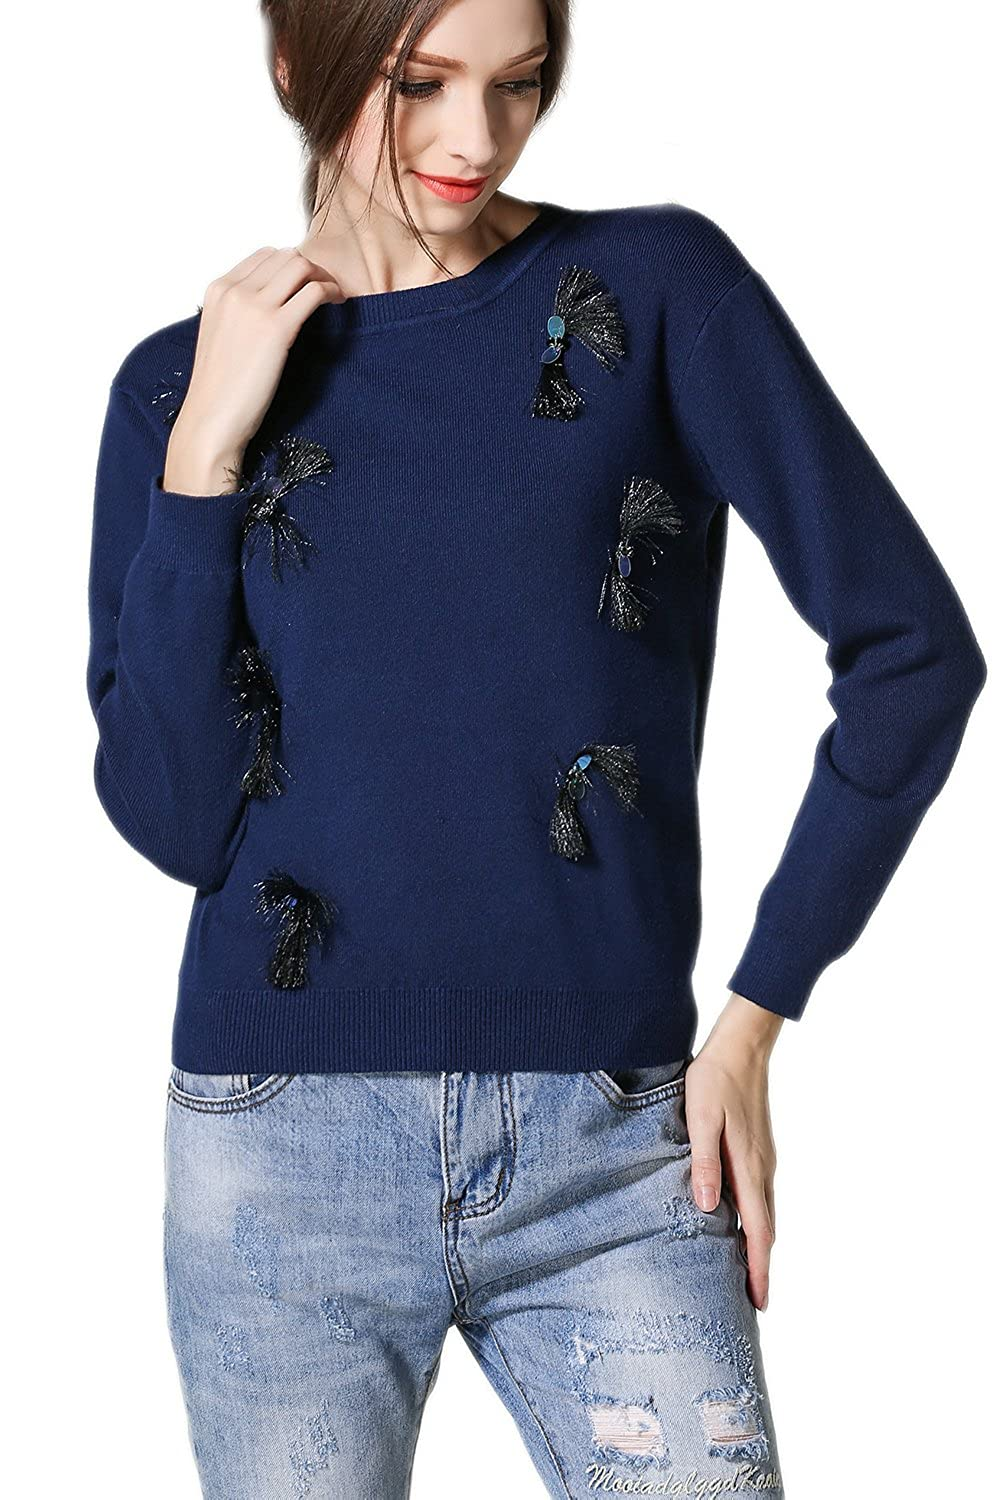 Women's Long Sleeve Pullover Casual Cargigan Sweater with Beads